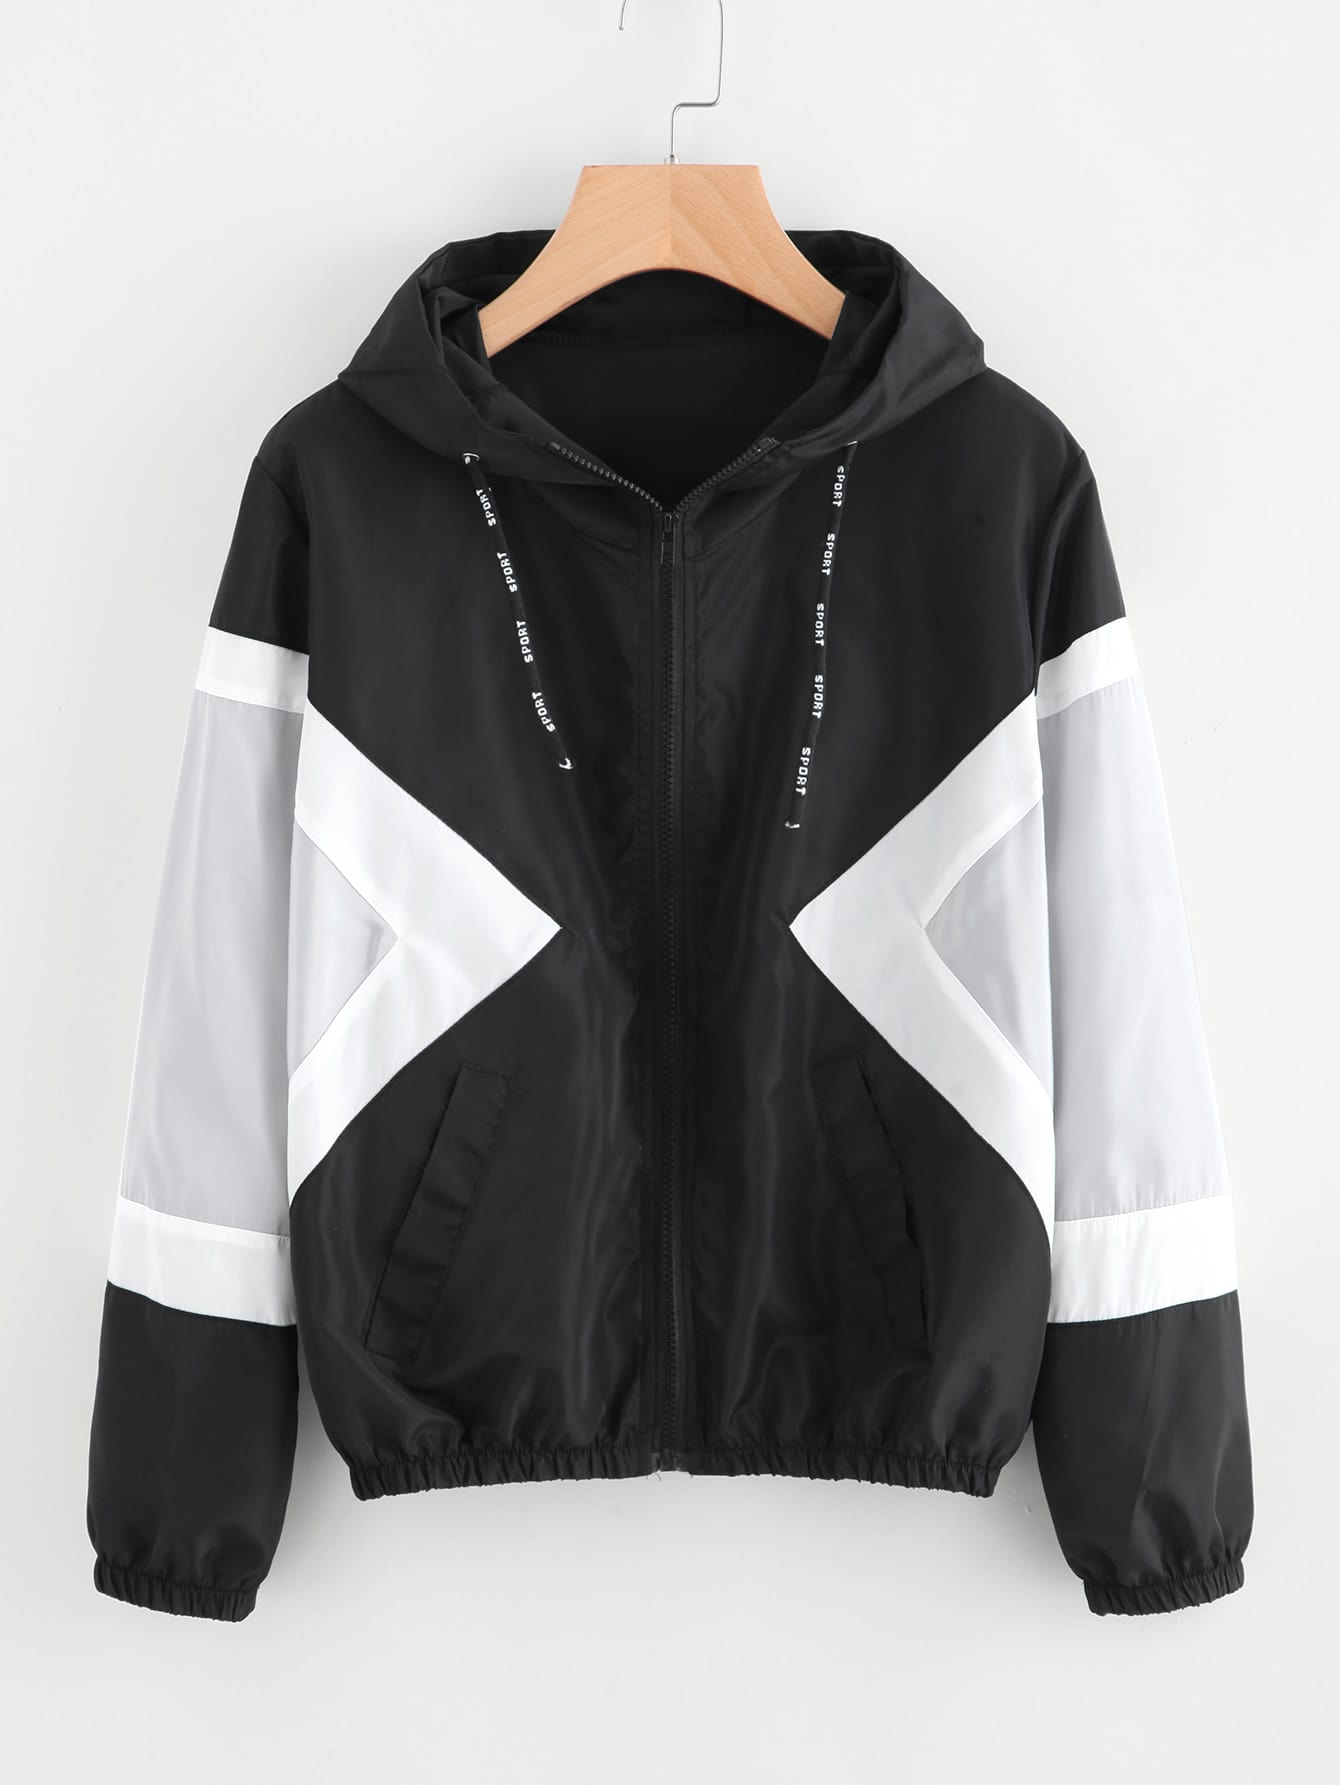 Contrast Panel Hooded Jacket champion hooded jacket